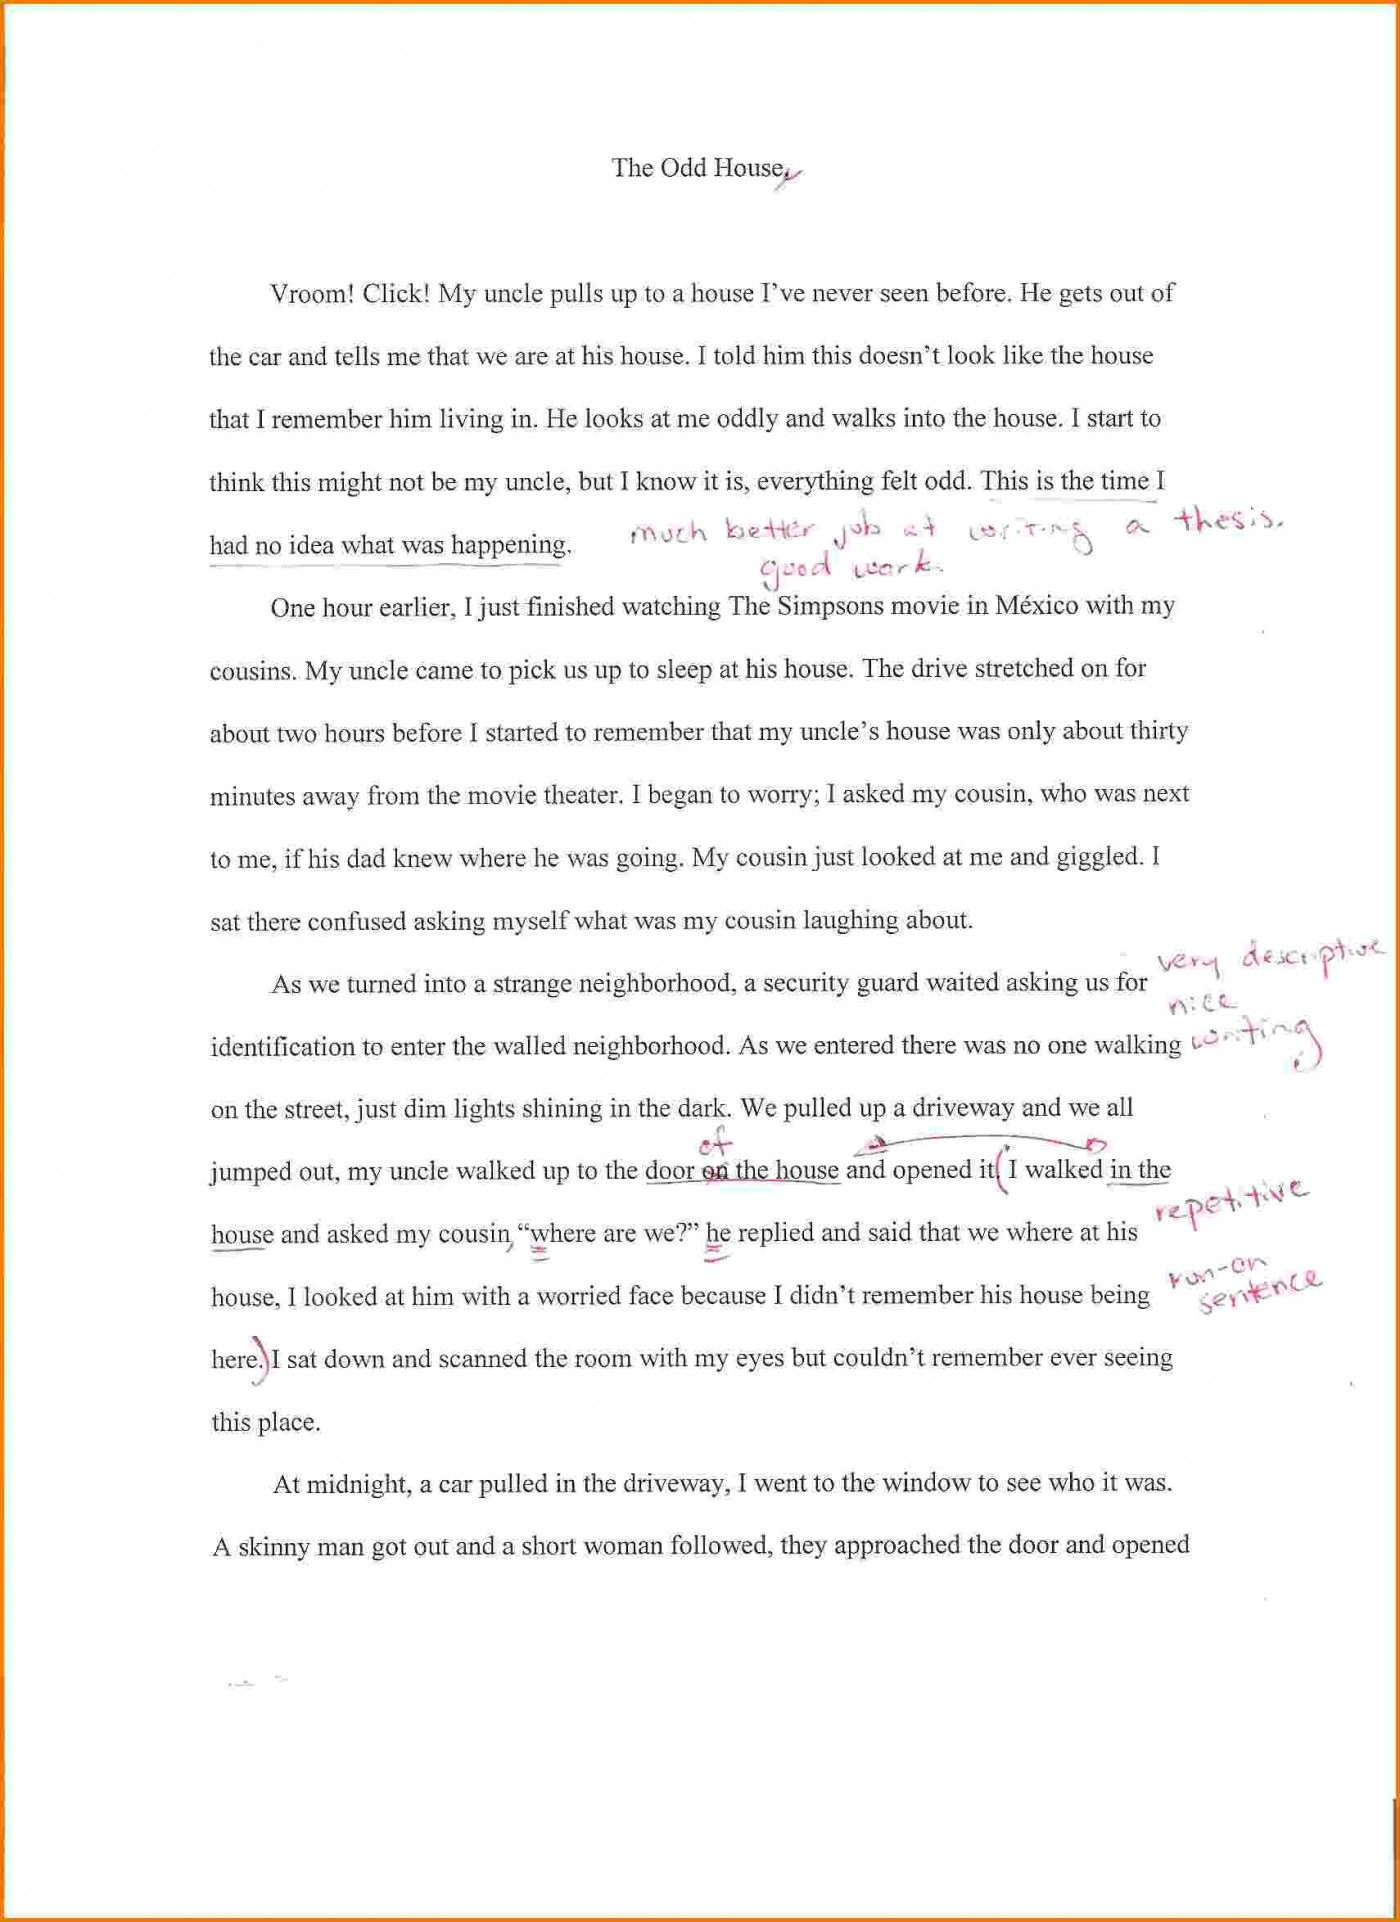 006 How To Write Autobiography Essay Example Family Background Autobiographysample2 Exceptional A An Introduction Autobiographical For College Grad School 1400